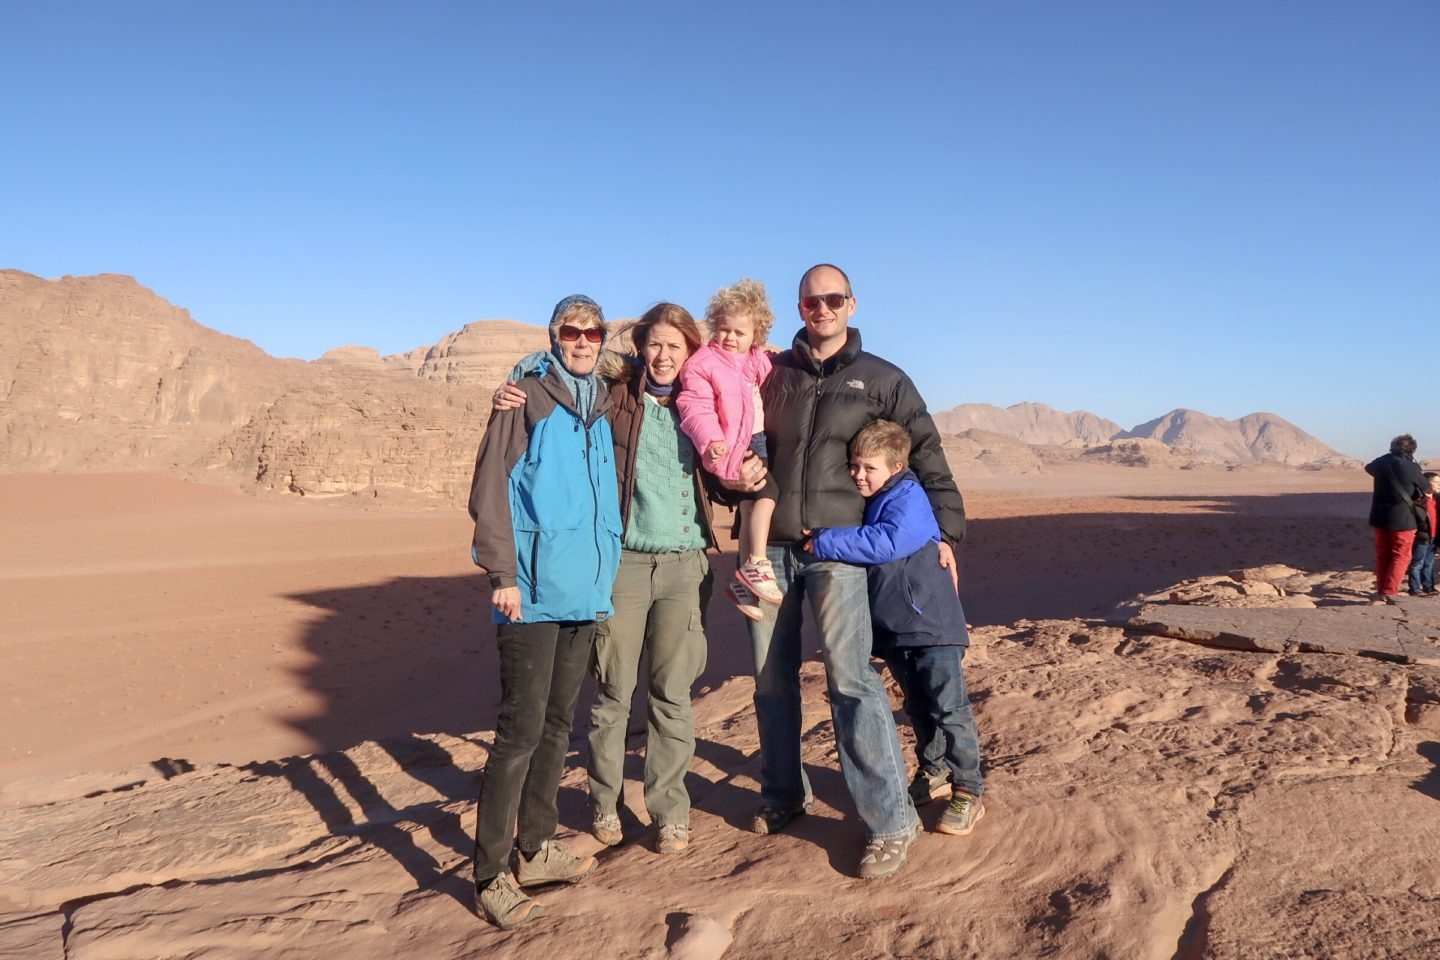 Wanderlust family photo in Wadi Rum - Jordan Adventures Part 4 - Wadi Rum